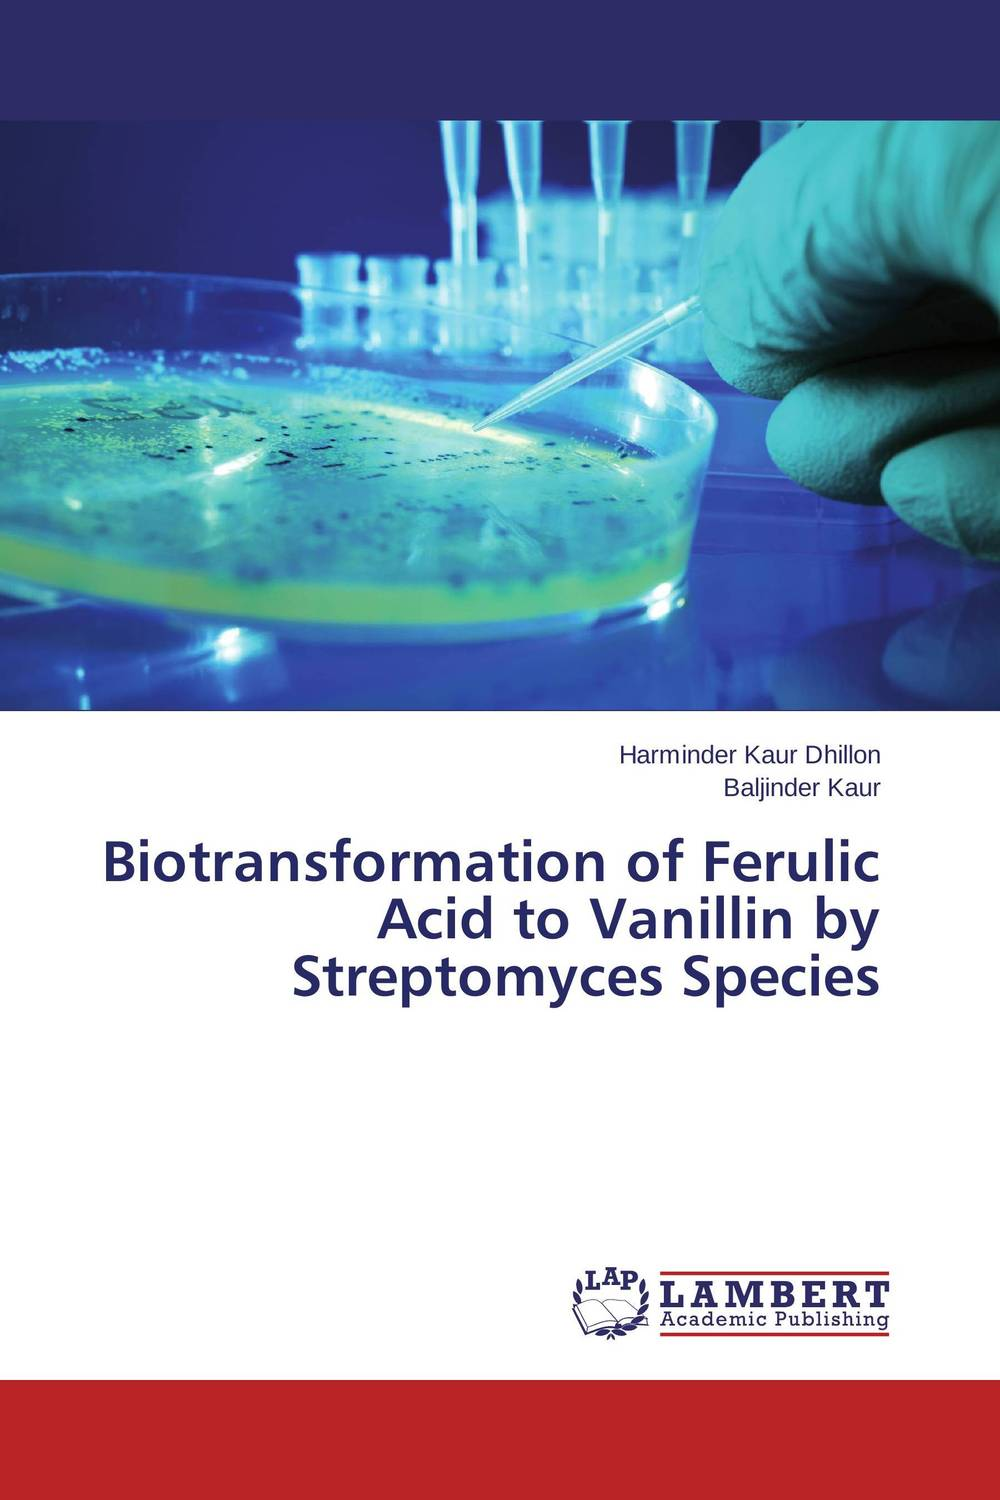 Biotransformation of Ferulic Acid to Vanillin by Streptomyces Species adding value to the citrus pulp by enzyme biotechnology production